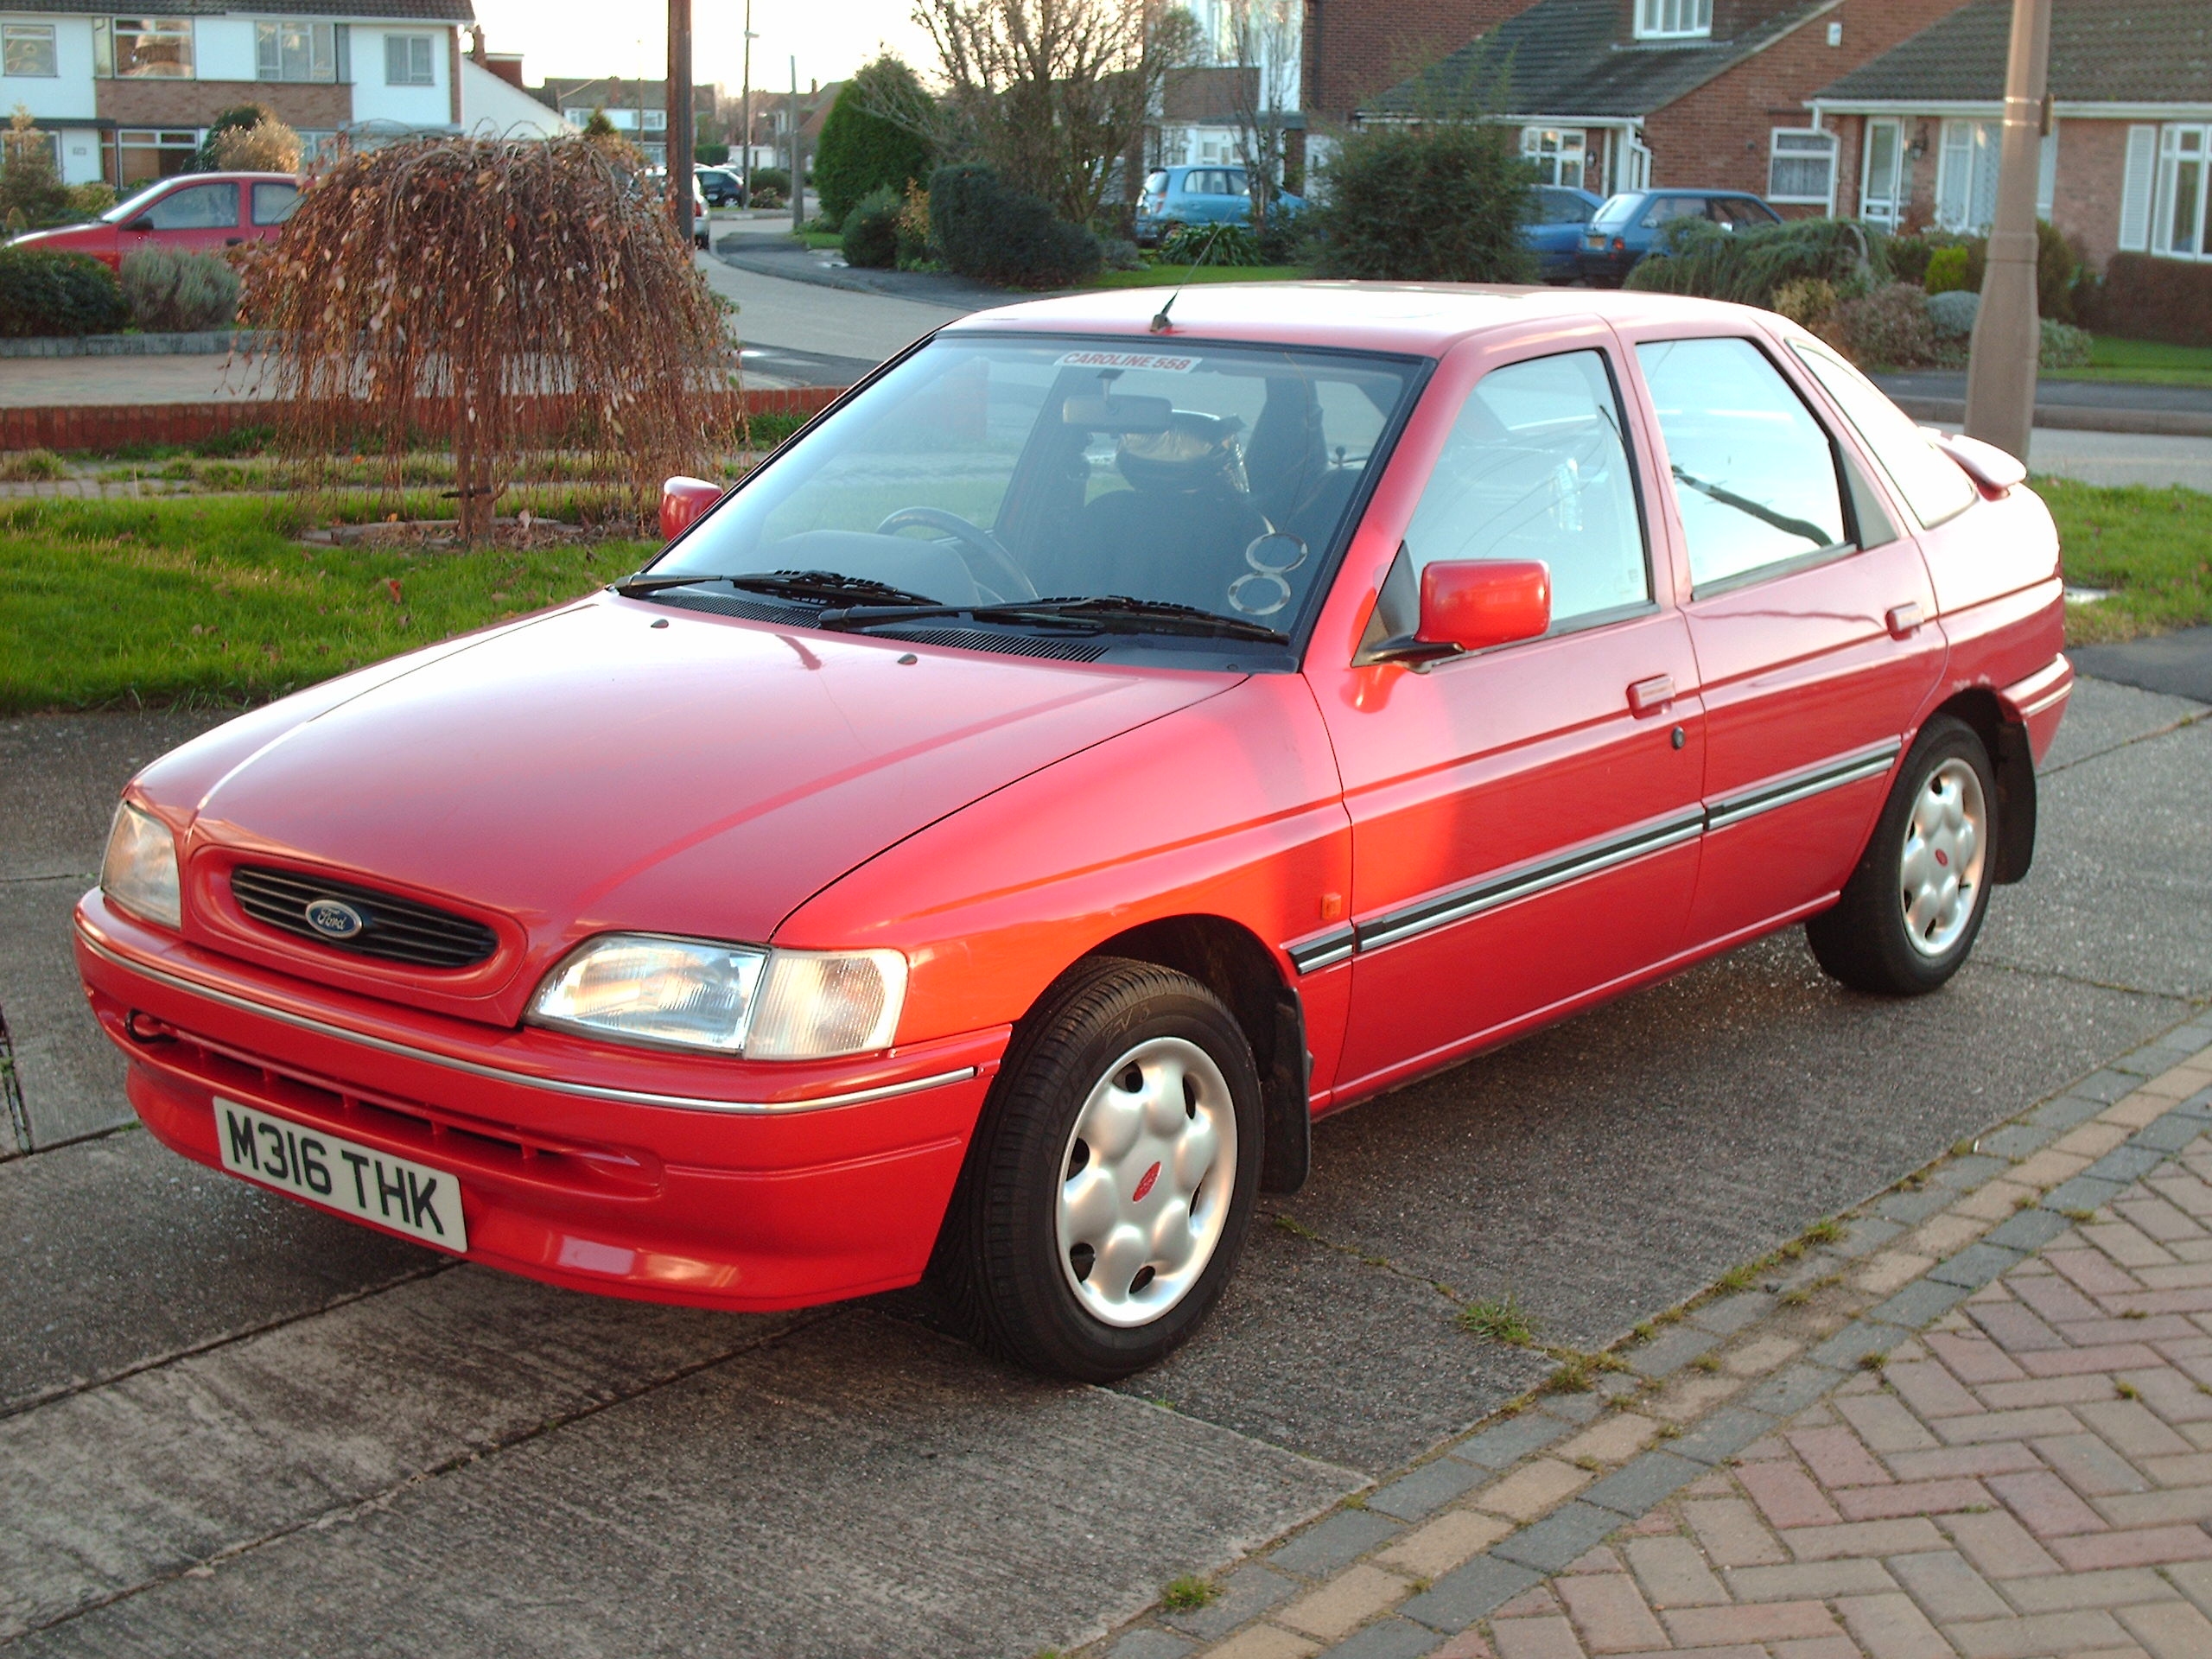 1995 ford escort trouble codes remarkable, the